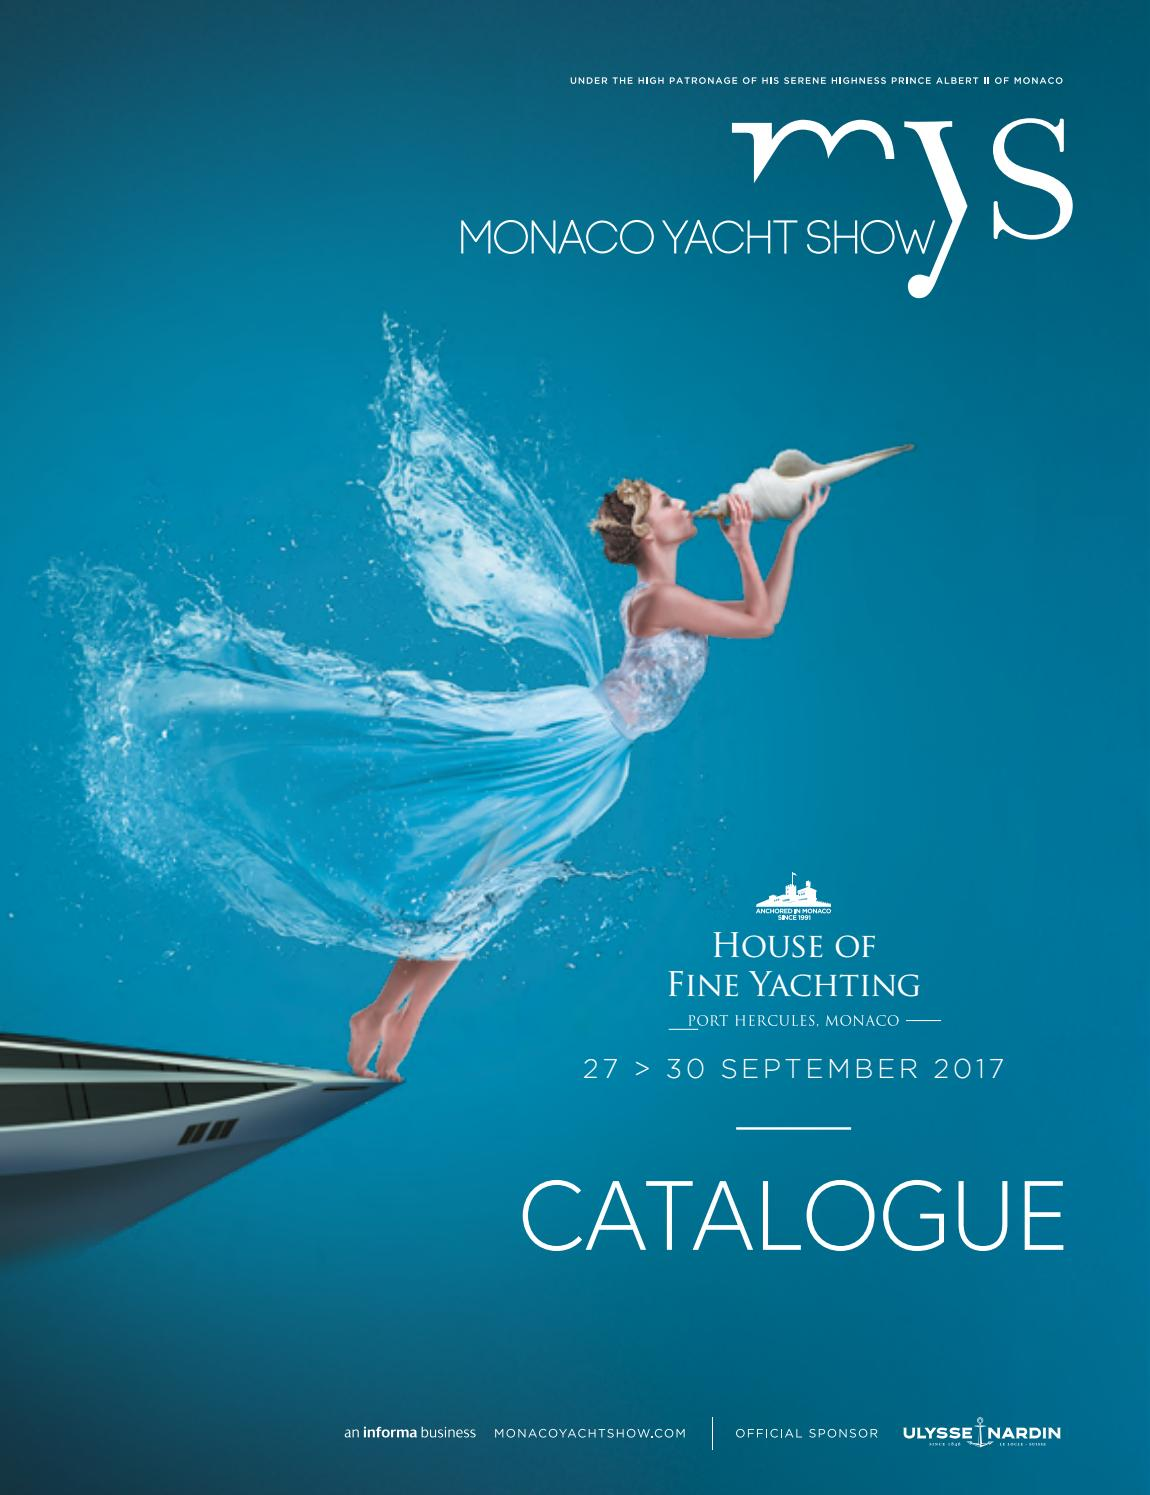 Monaco Yacht Show Catalogue 2017 By Monacoyachtshow Issuu